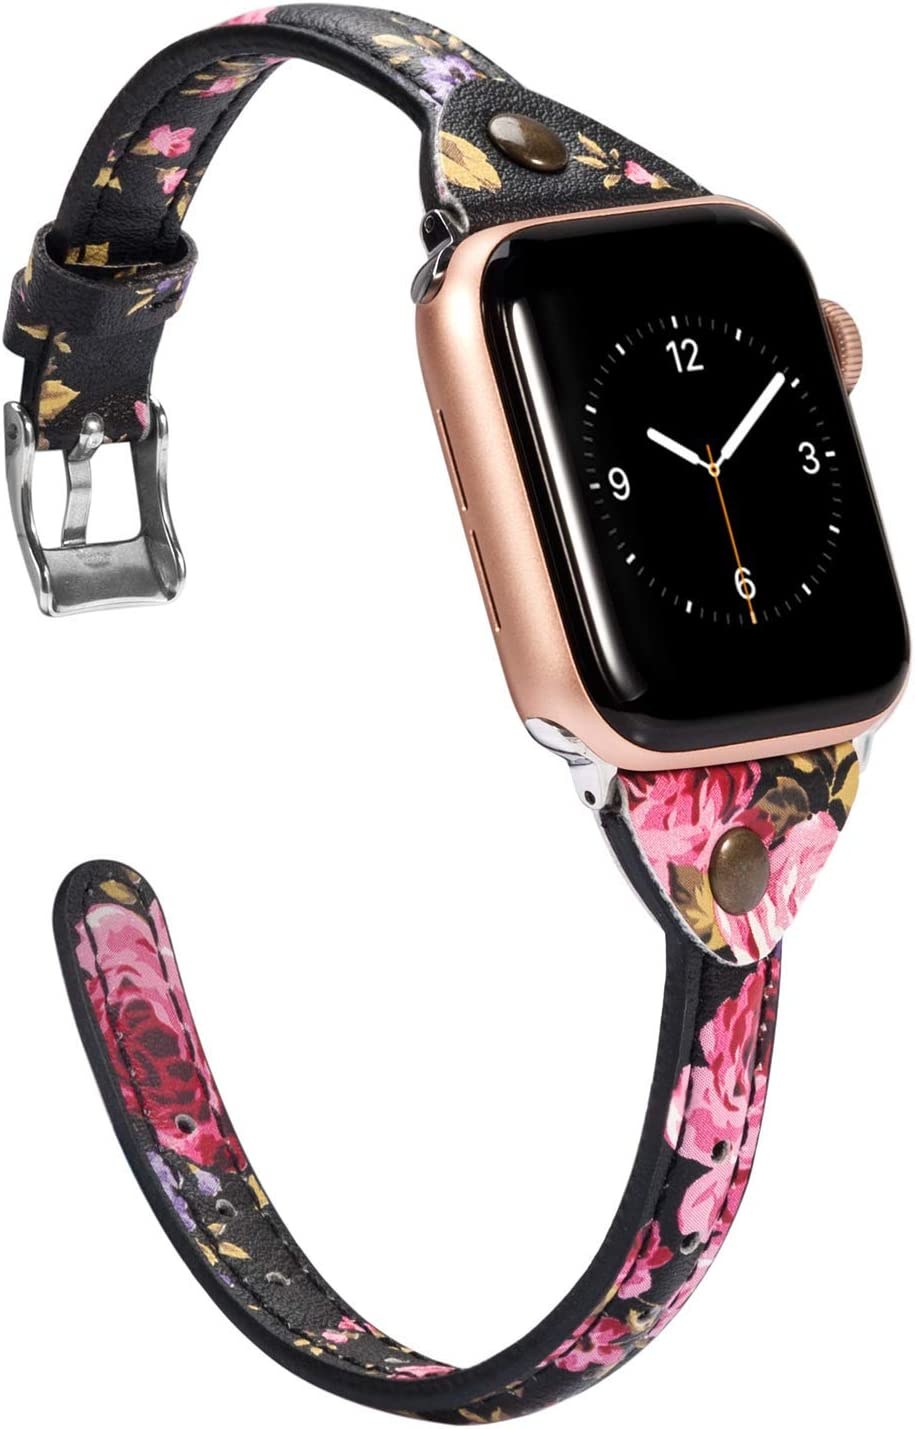 Wearlizer Floral Thin Leather Compatible with Apple Watch Bands 38mm 40mm for iWatch Womens Flower Printed Wristband Leisure Rivet Sport Bracelet (Silver Clasp) Series 6 5 4 3 2 1 Sport¡